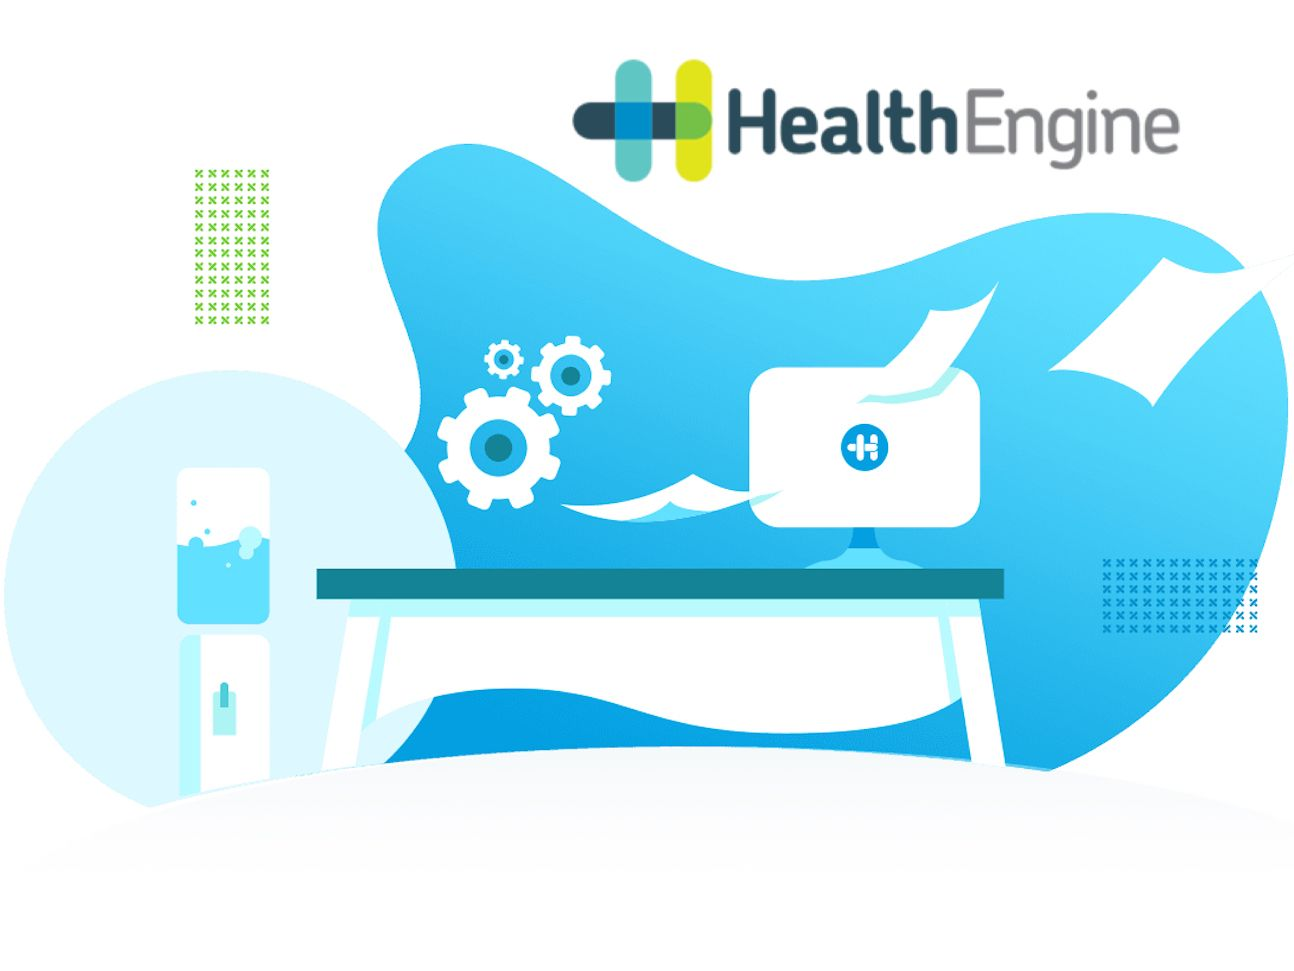 HealthEngine and Cliniko